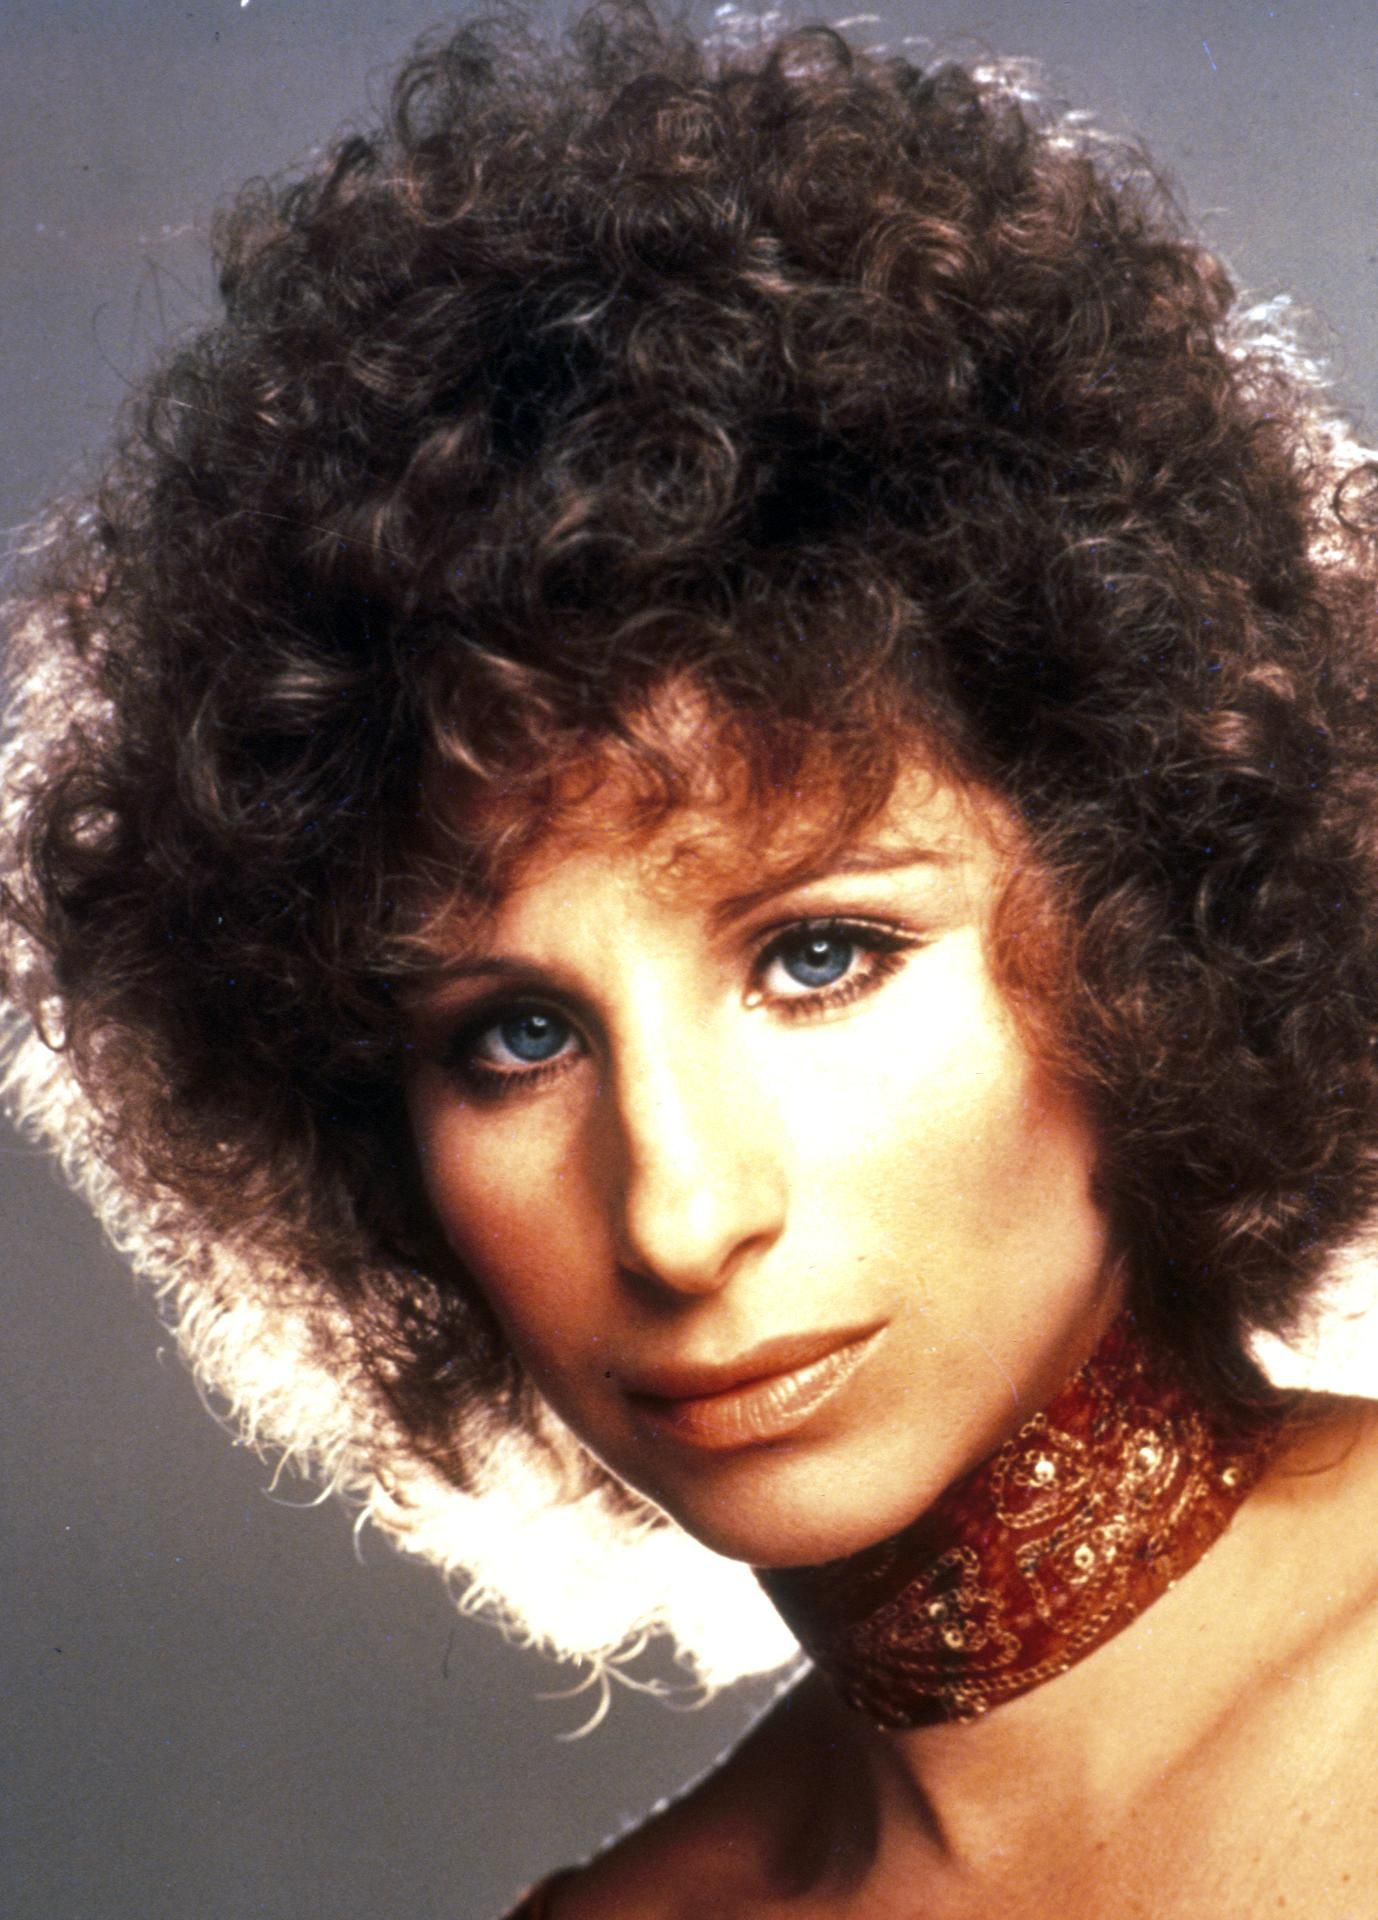 barbra streisanda star is bornwe all got perms